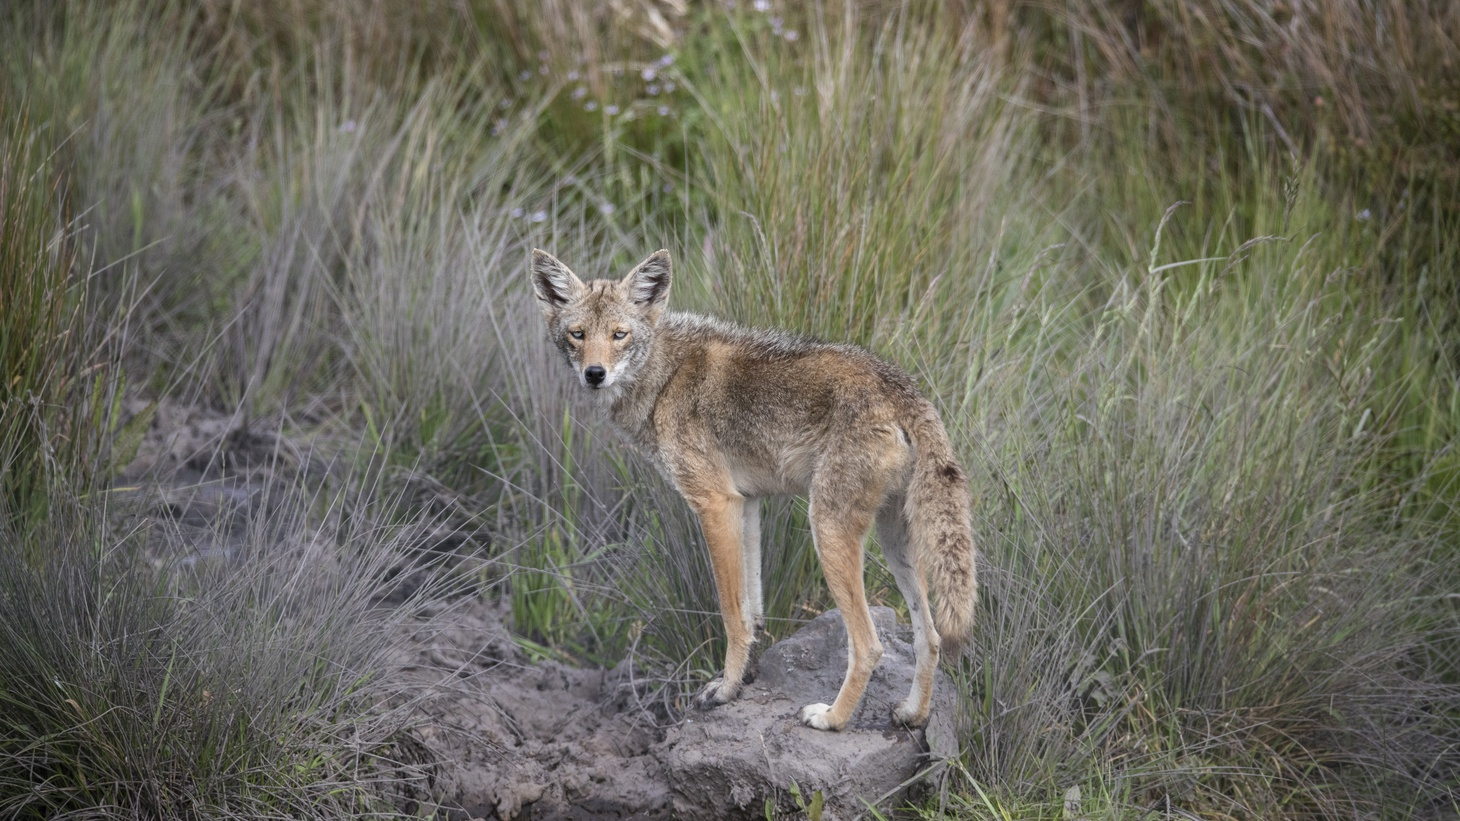 This blue-eyed coyote, spotted in April by wildlife guide Daniel Dietrich and photographed by National Geographic's Callie Broaddus, was the first among at least five confirmed mutants to be identified in the Bay Area.